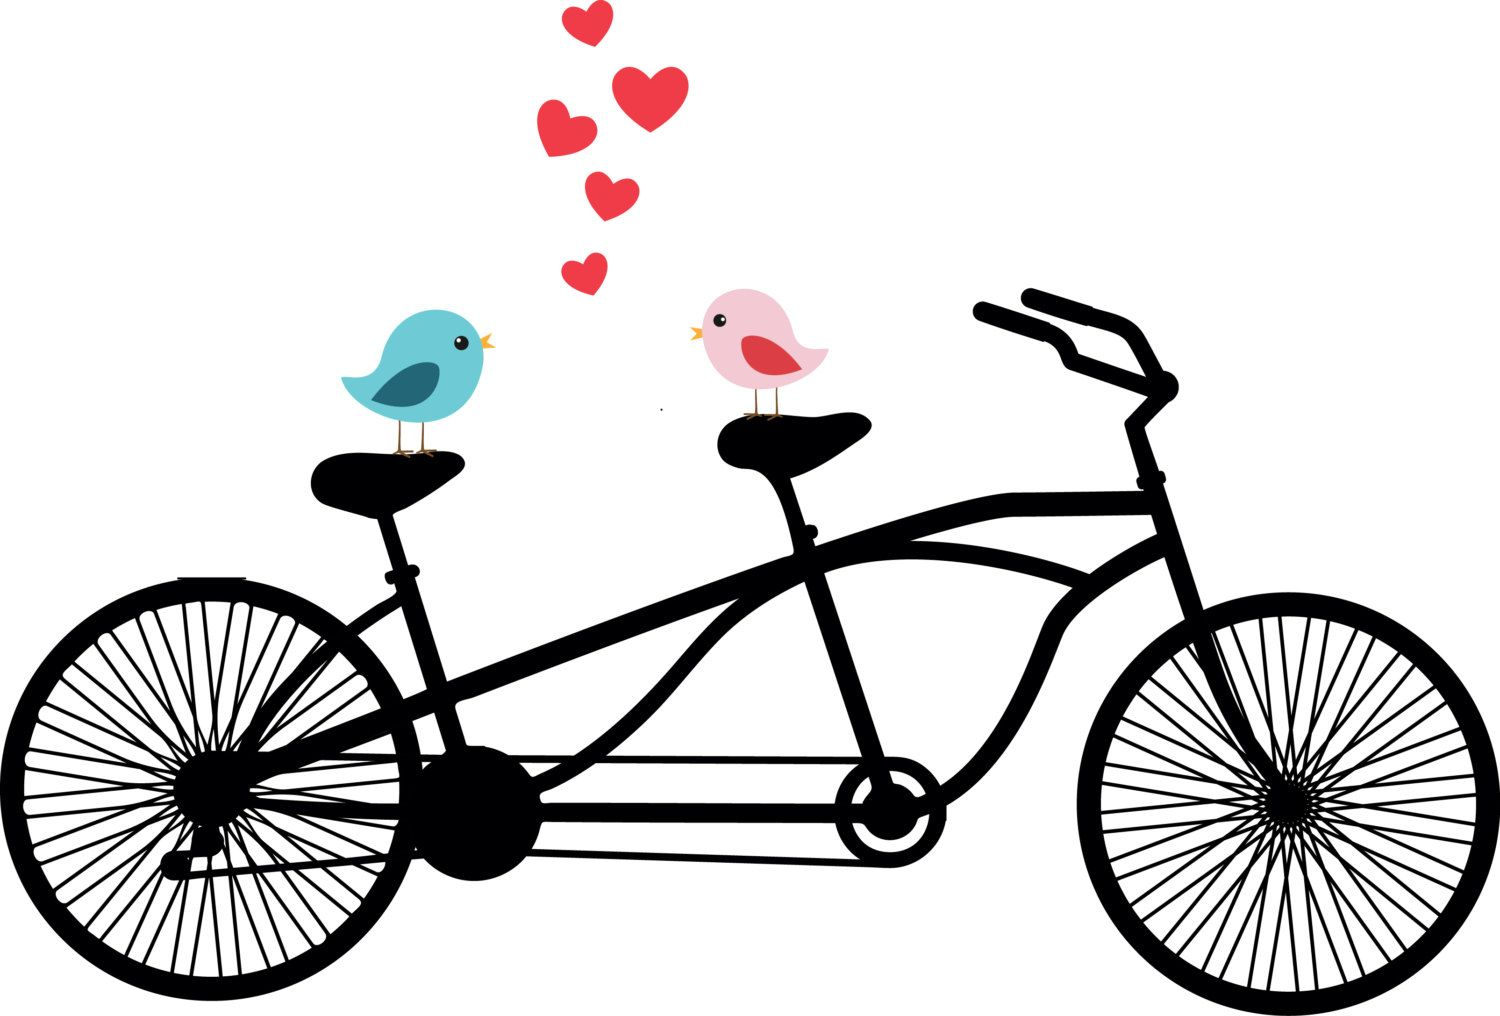 tandem bicycle clipart love birds wedding by thelilcliparts bici rh pinterest ca tandem bicycle clipart tandem bicycle clipart